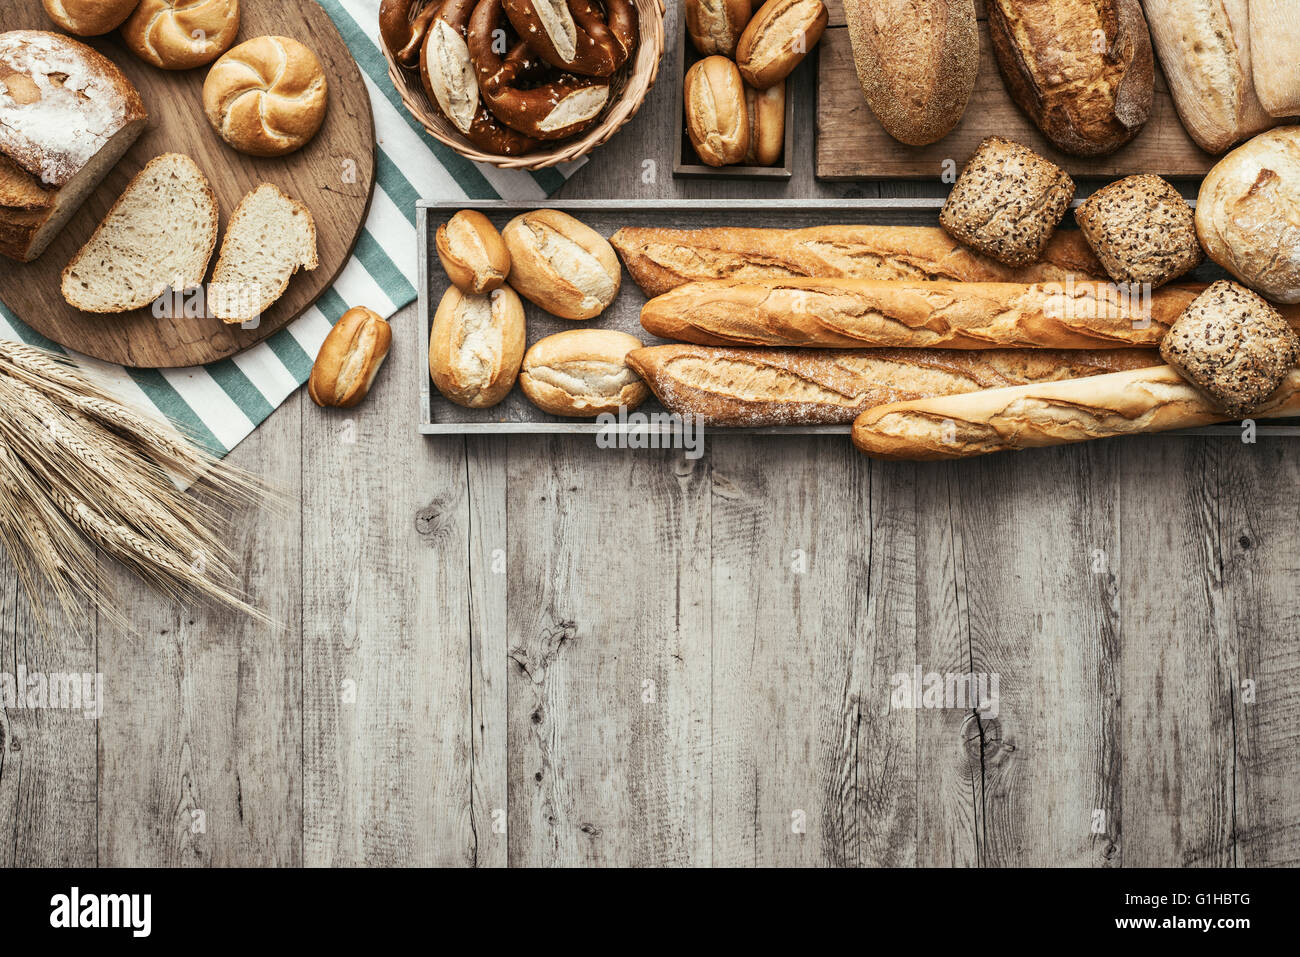 Freshly baked delicious bread on a rustic wooden worktop with copy space, healthy eating concept, flat lay - Stock Image